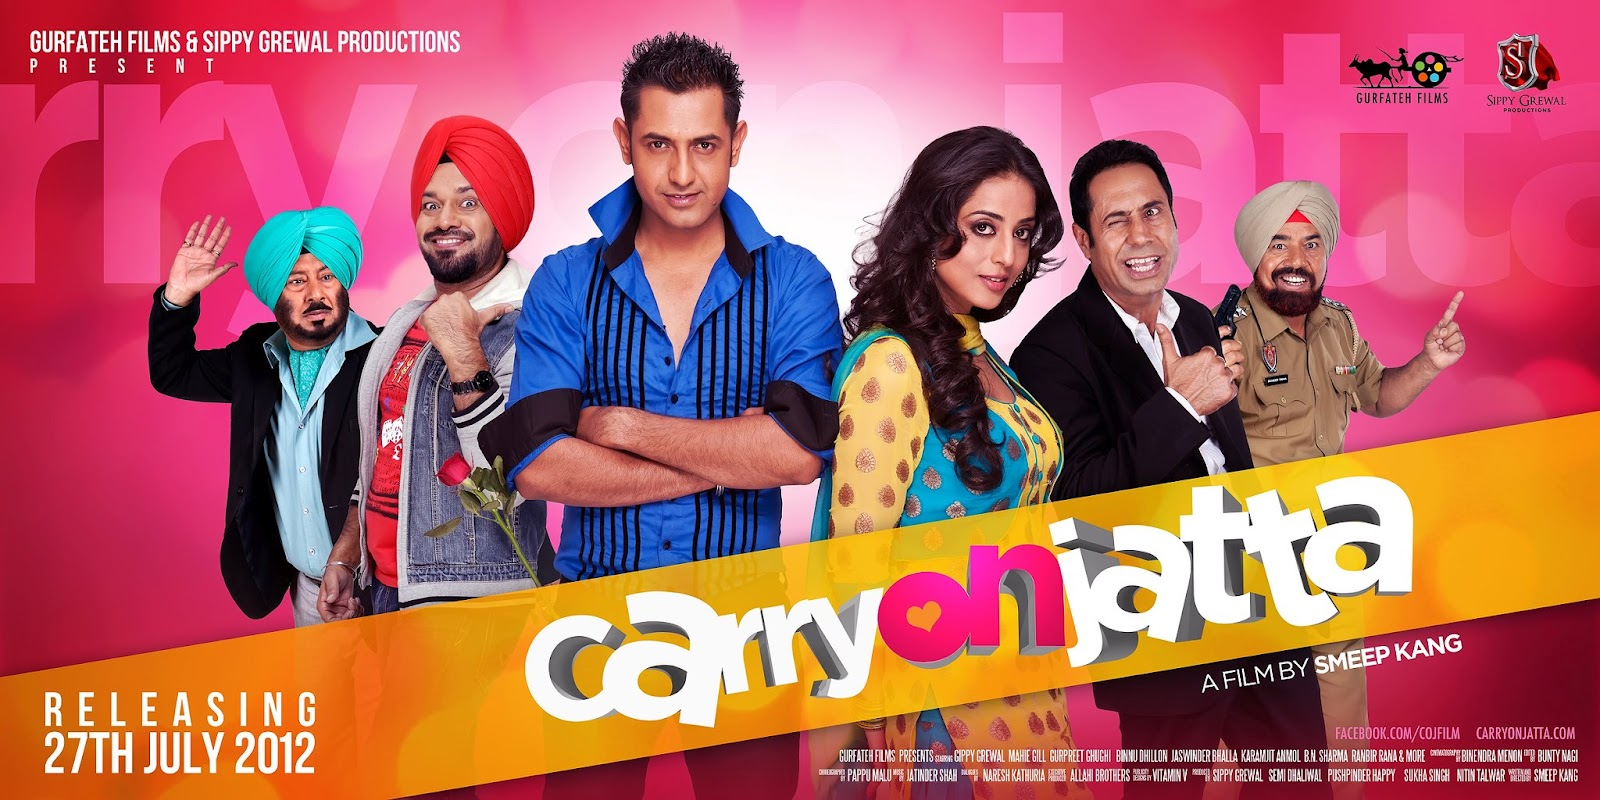 Watch Punjabi Movies, Hindi Films, New Releases on Box Office